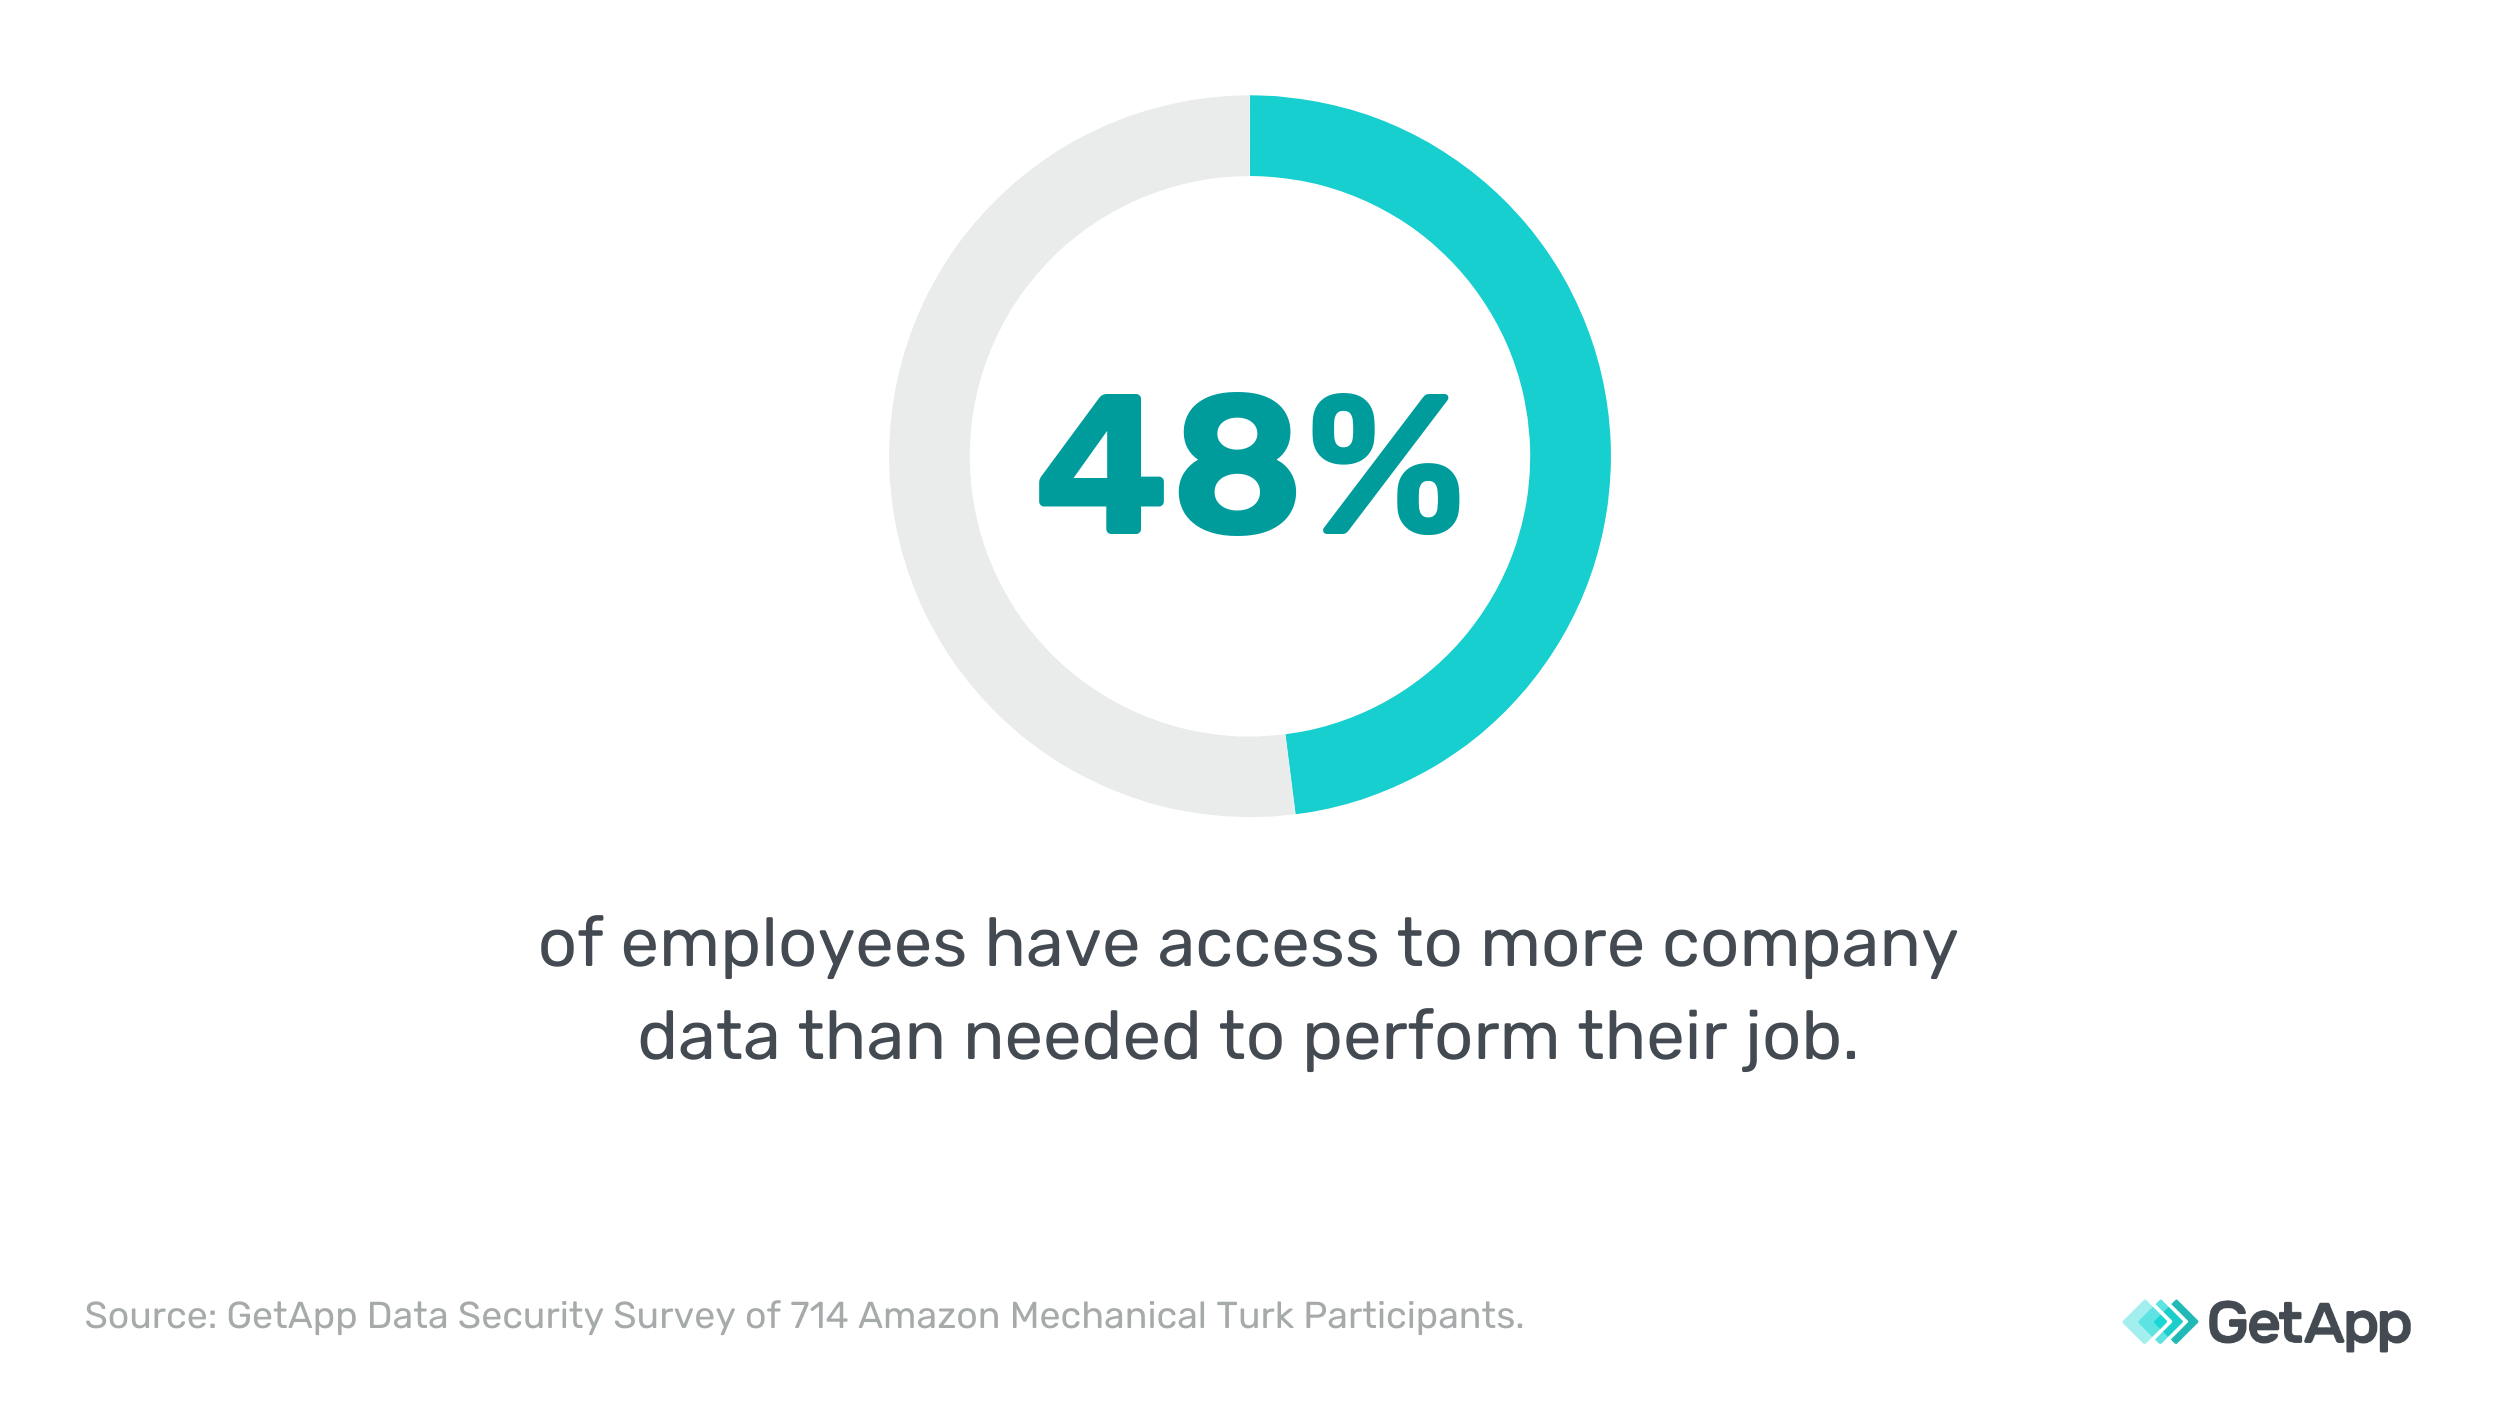 48% of employees have access to more company data than needed